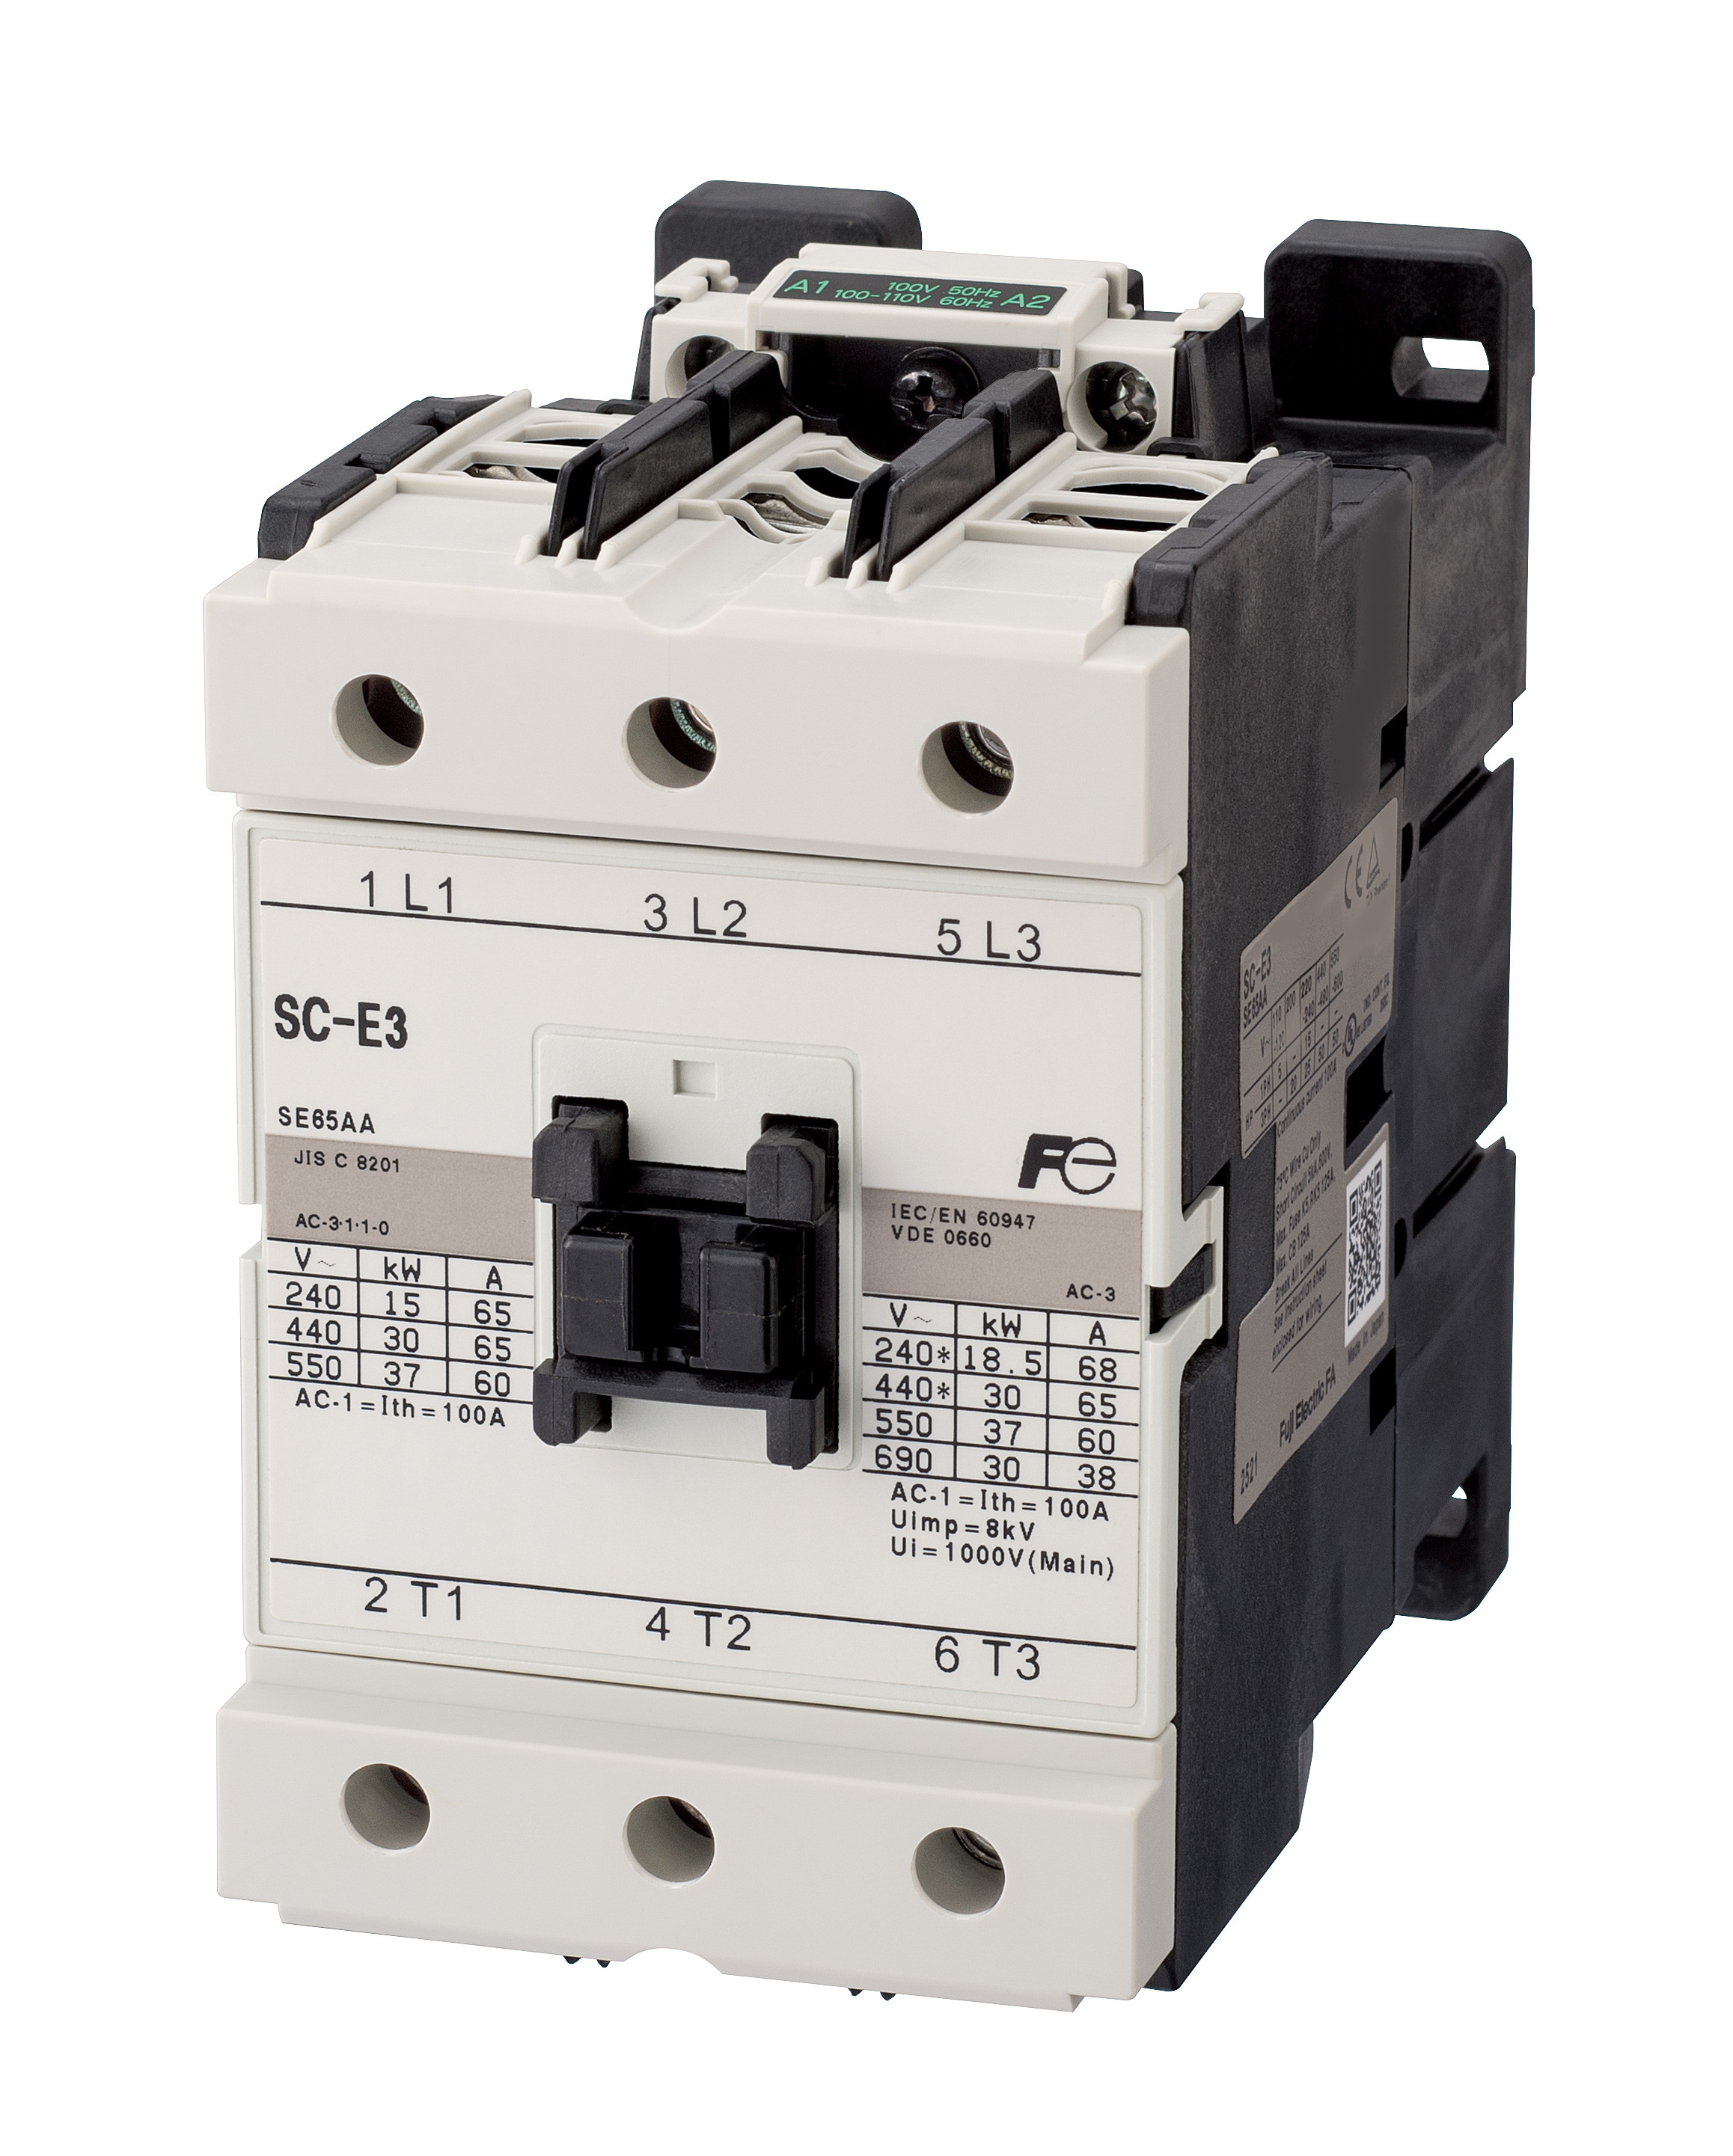 KKD13 168 power distribution & control devices industrial automation  at cos-gaming.co